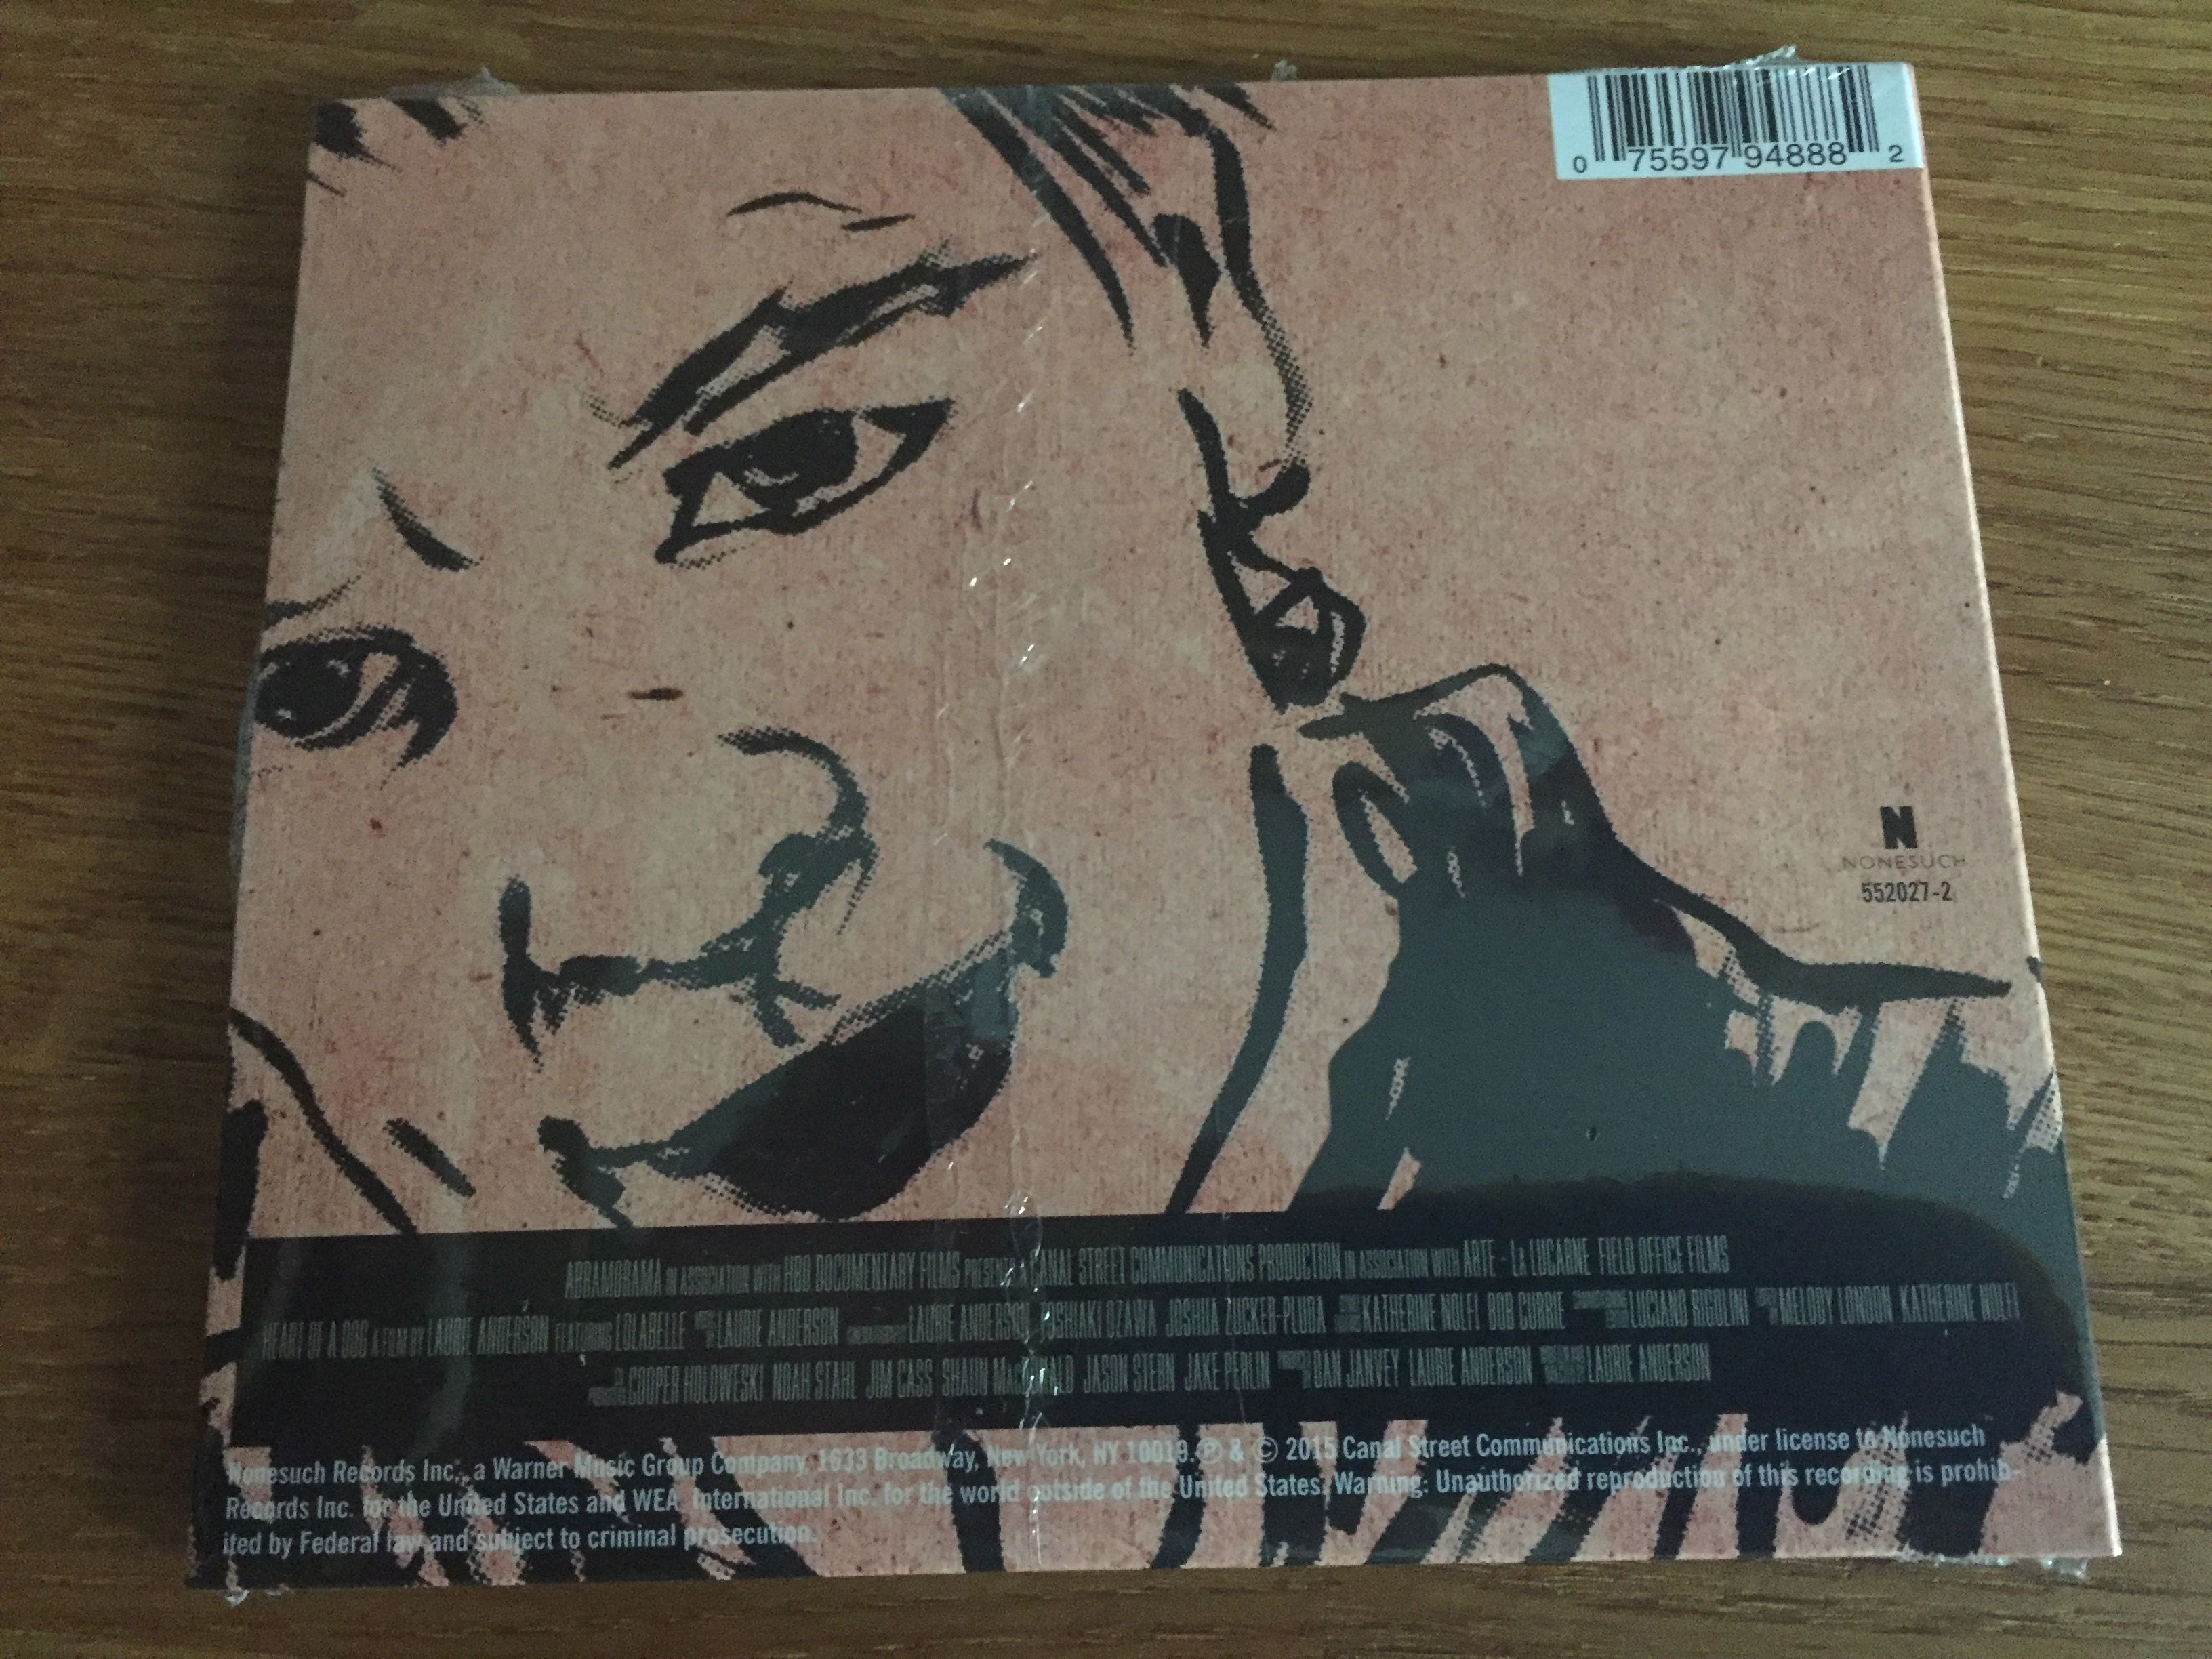 Laurie Anderson, Heart of a Dog CD Back